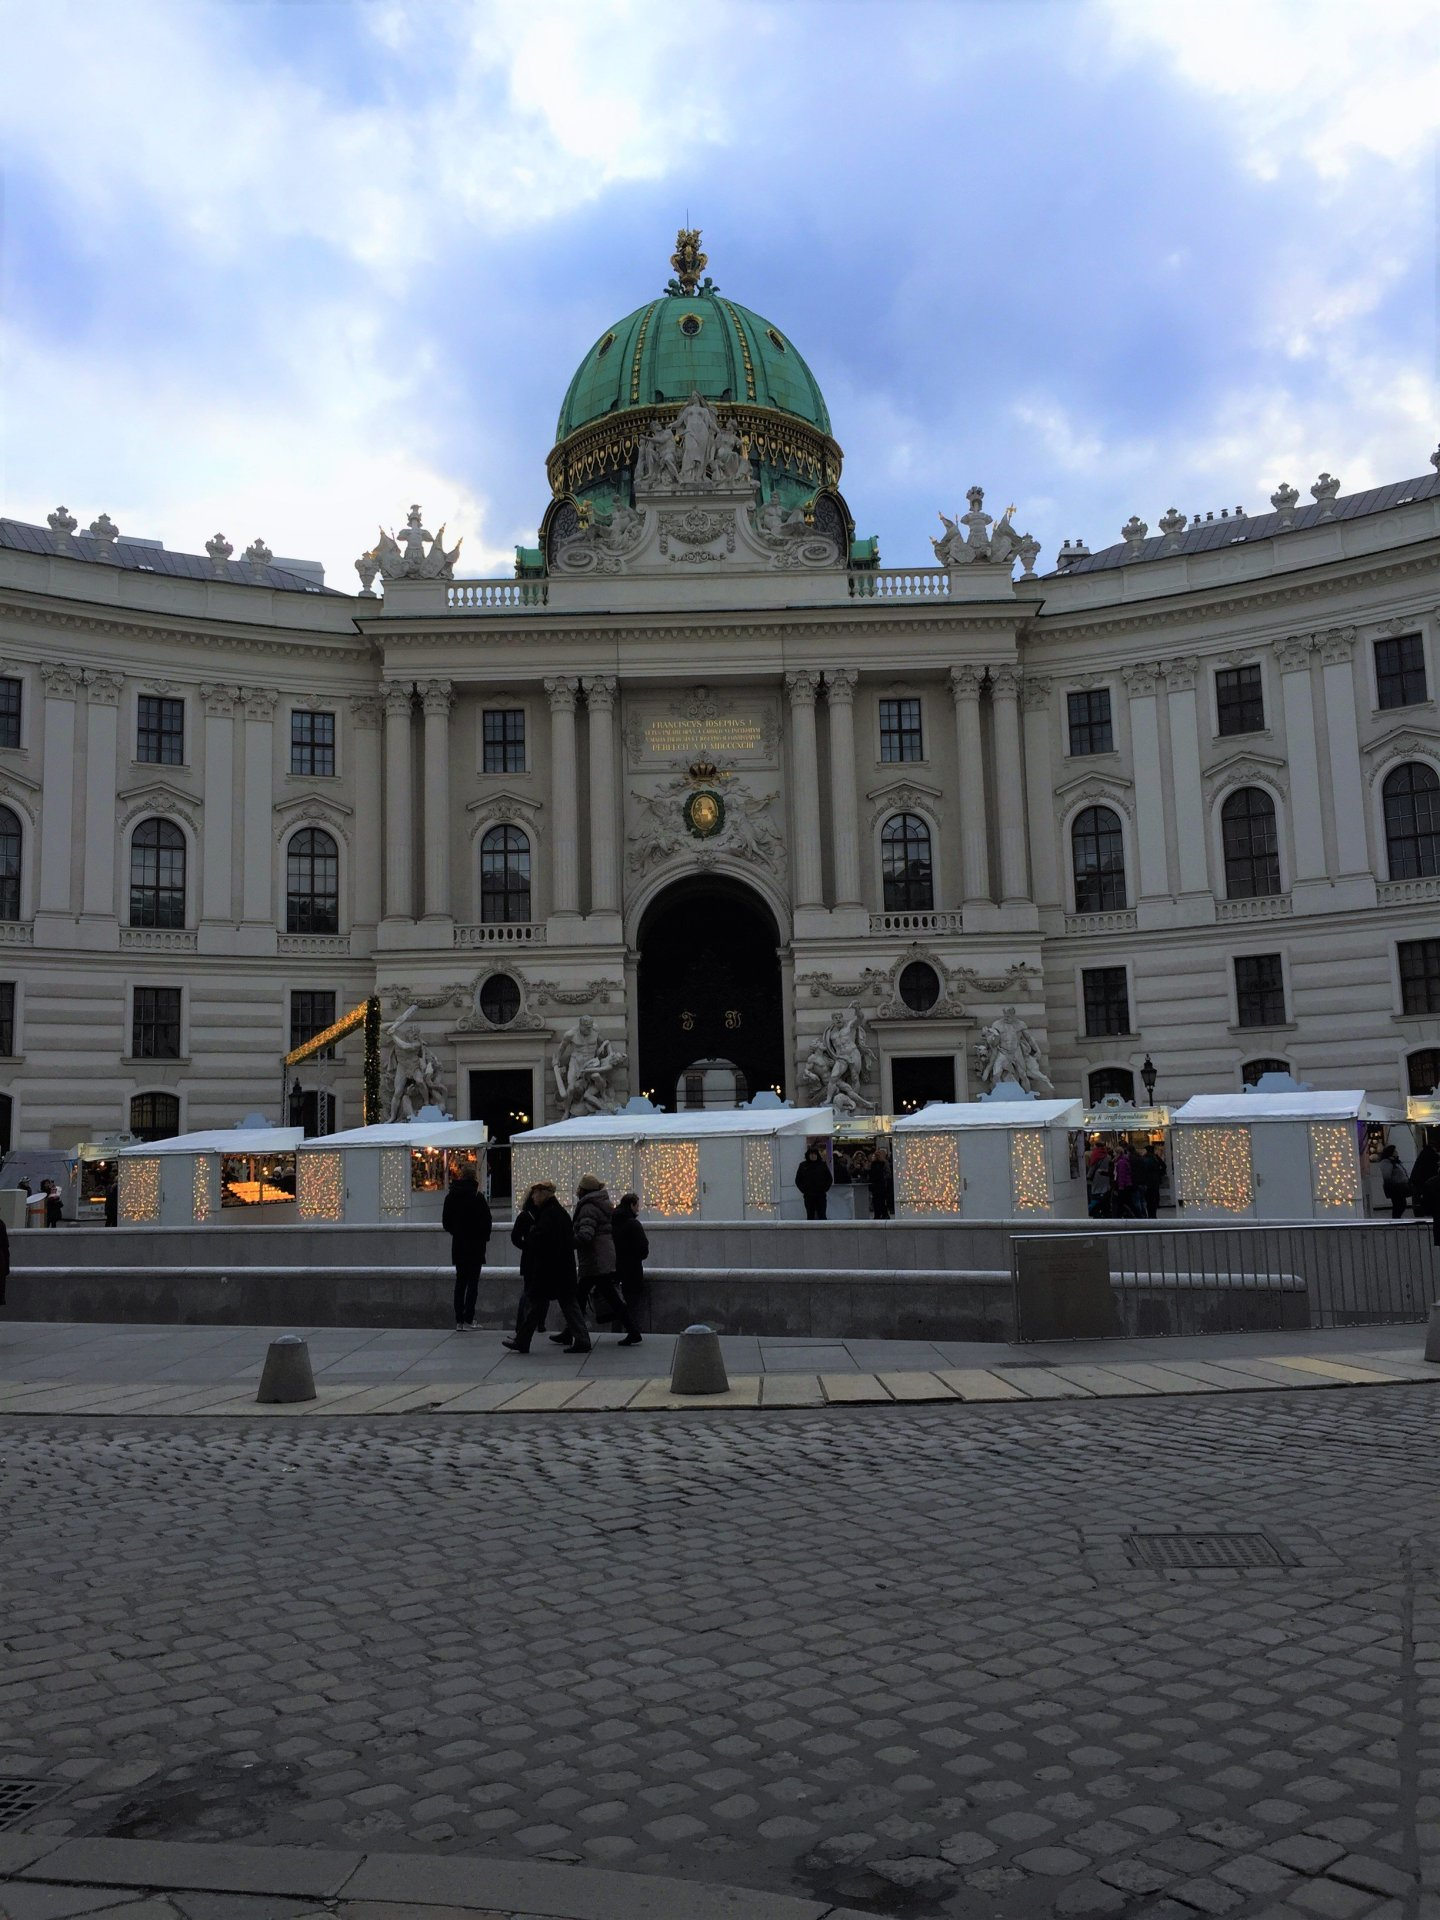 Christmas market at Michaelerplatz, the entrance to the Hofburg Palace